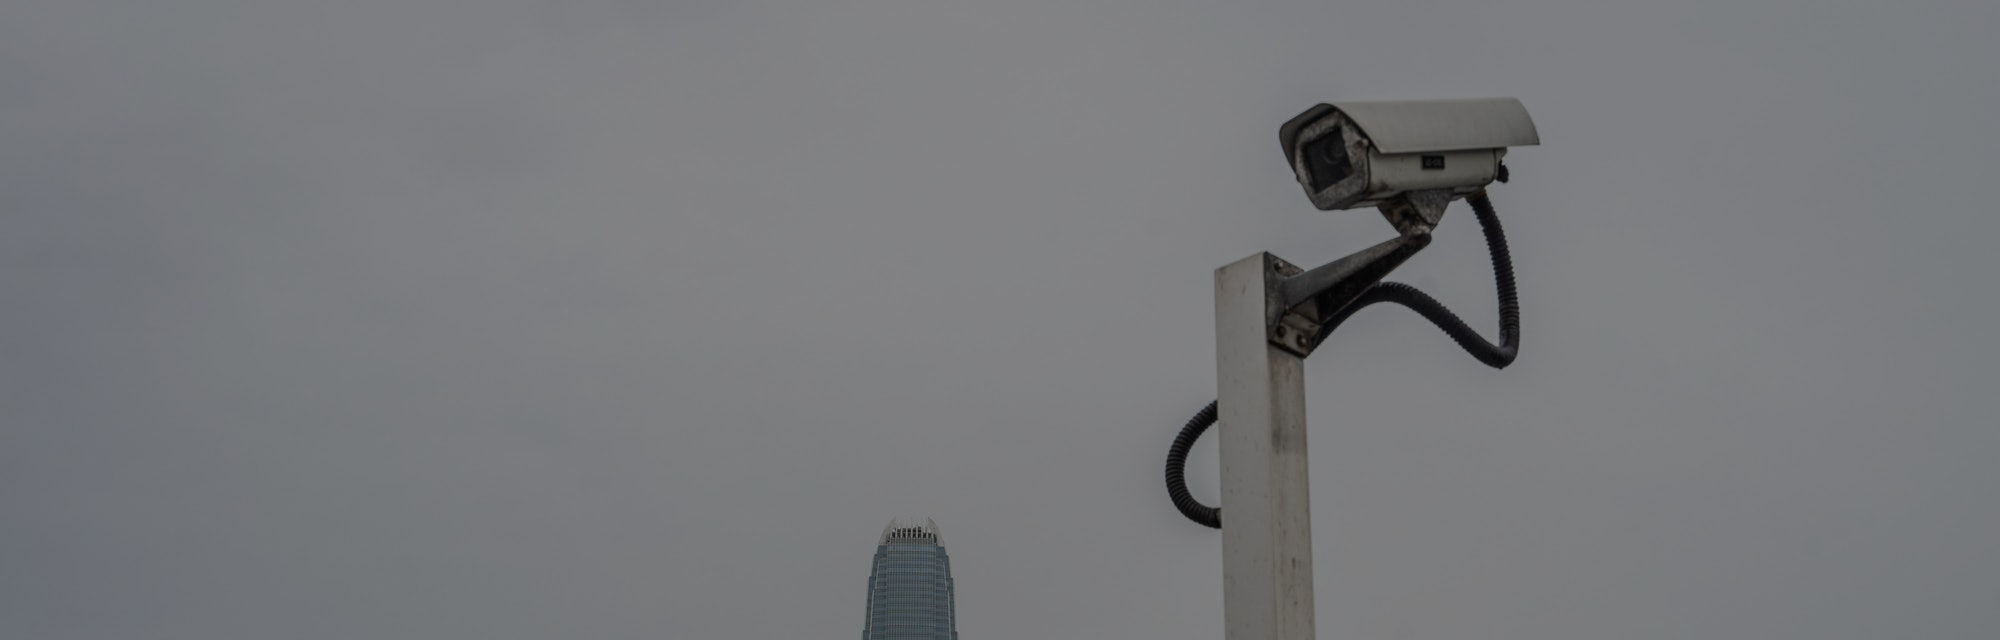 HONG KONG, CHINA - 2021/06/22: The CCTV camera monitor is set in front of the city skyline at the Vi...